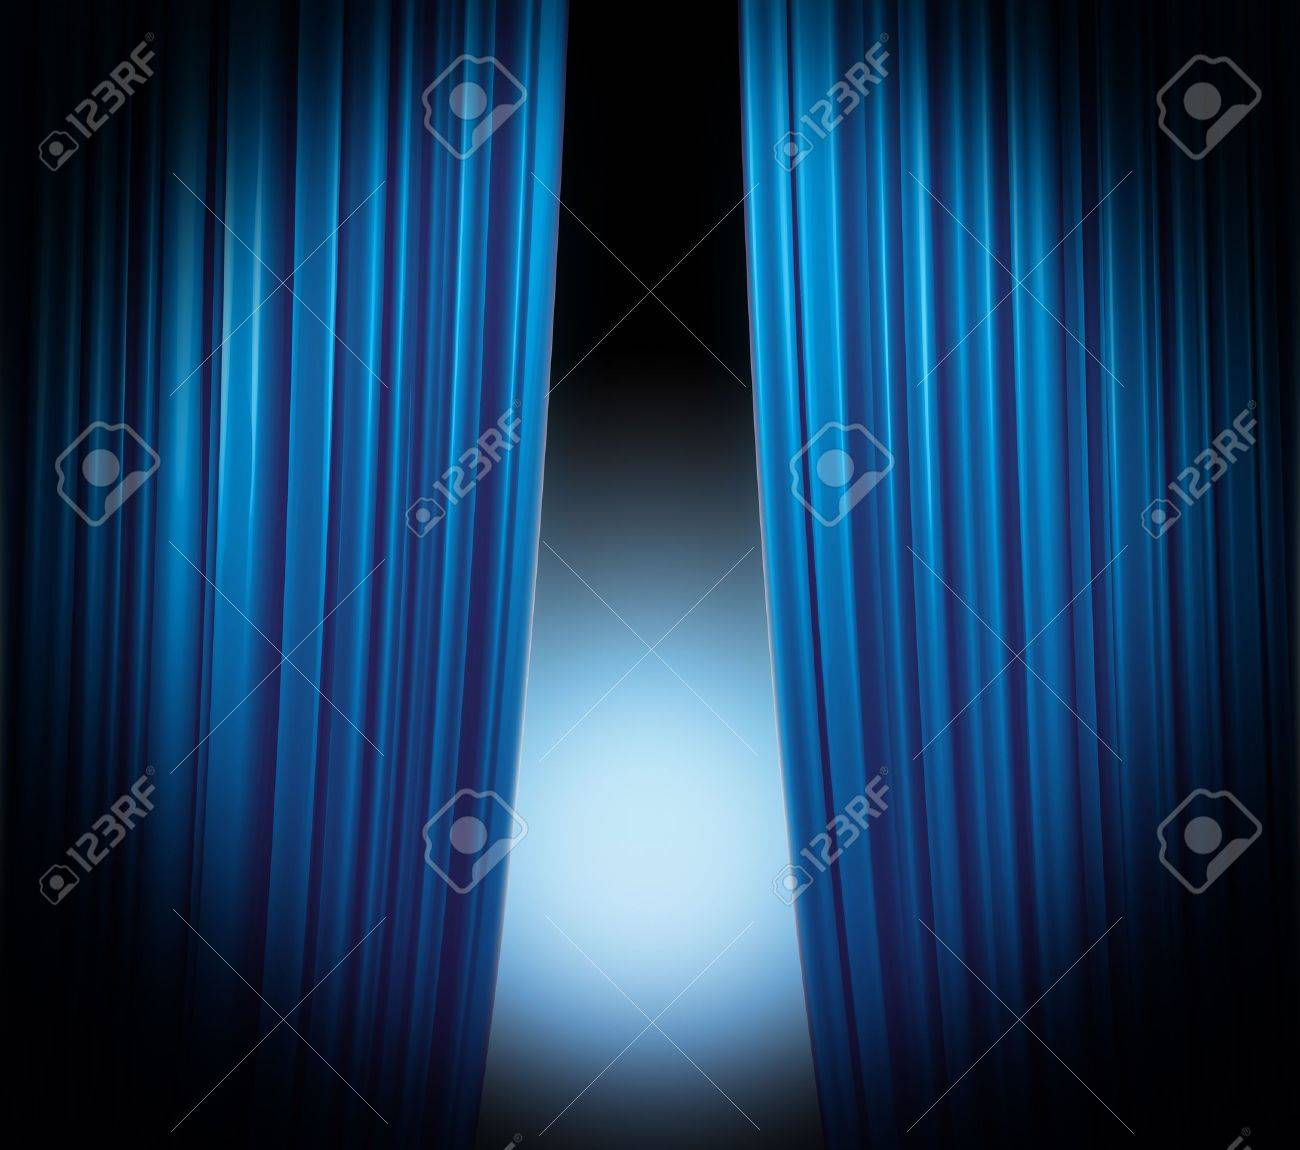 Blue curtain backdrop - Behind Stage Curtains Background Blue Curtain Backdrop Behind Stage Curtains Background Behind Stage Curtains Background